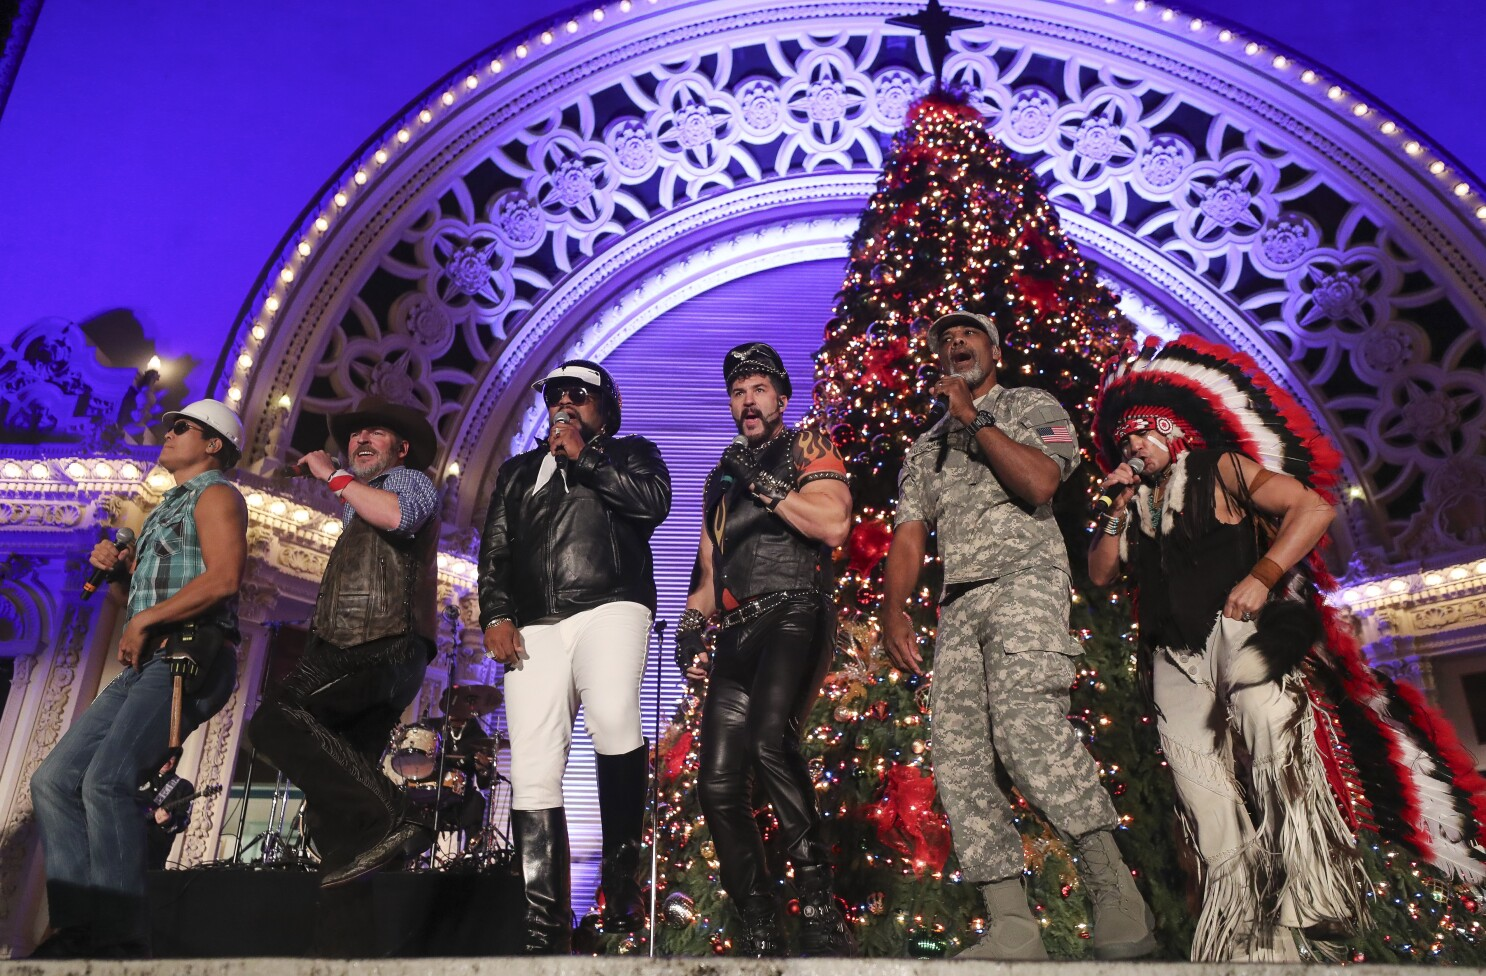 Village People S Y M C A Inducted By Library Of Congress As Group Debuts New Coronavirus Inspired Video The San Diego Union Tribune